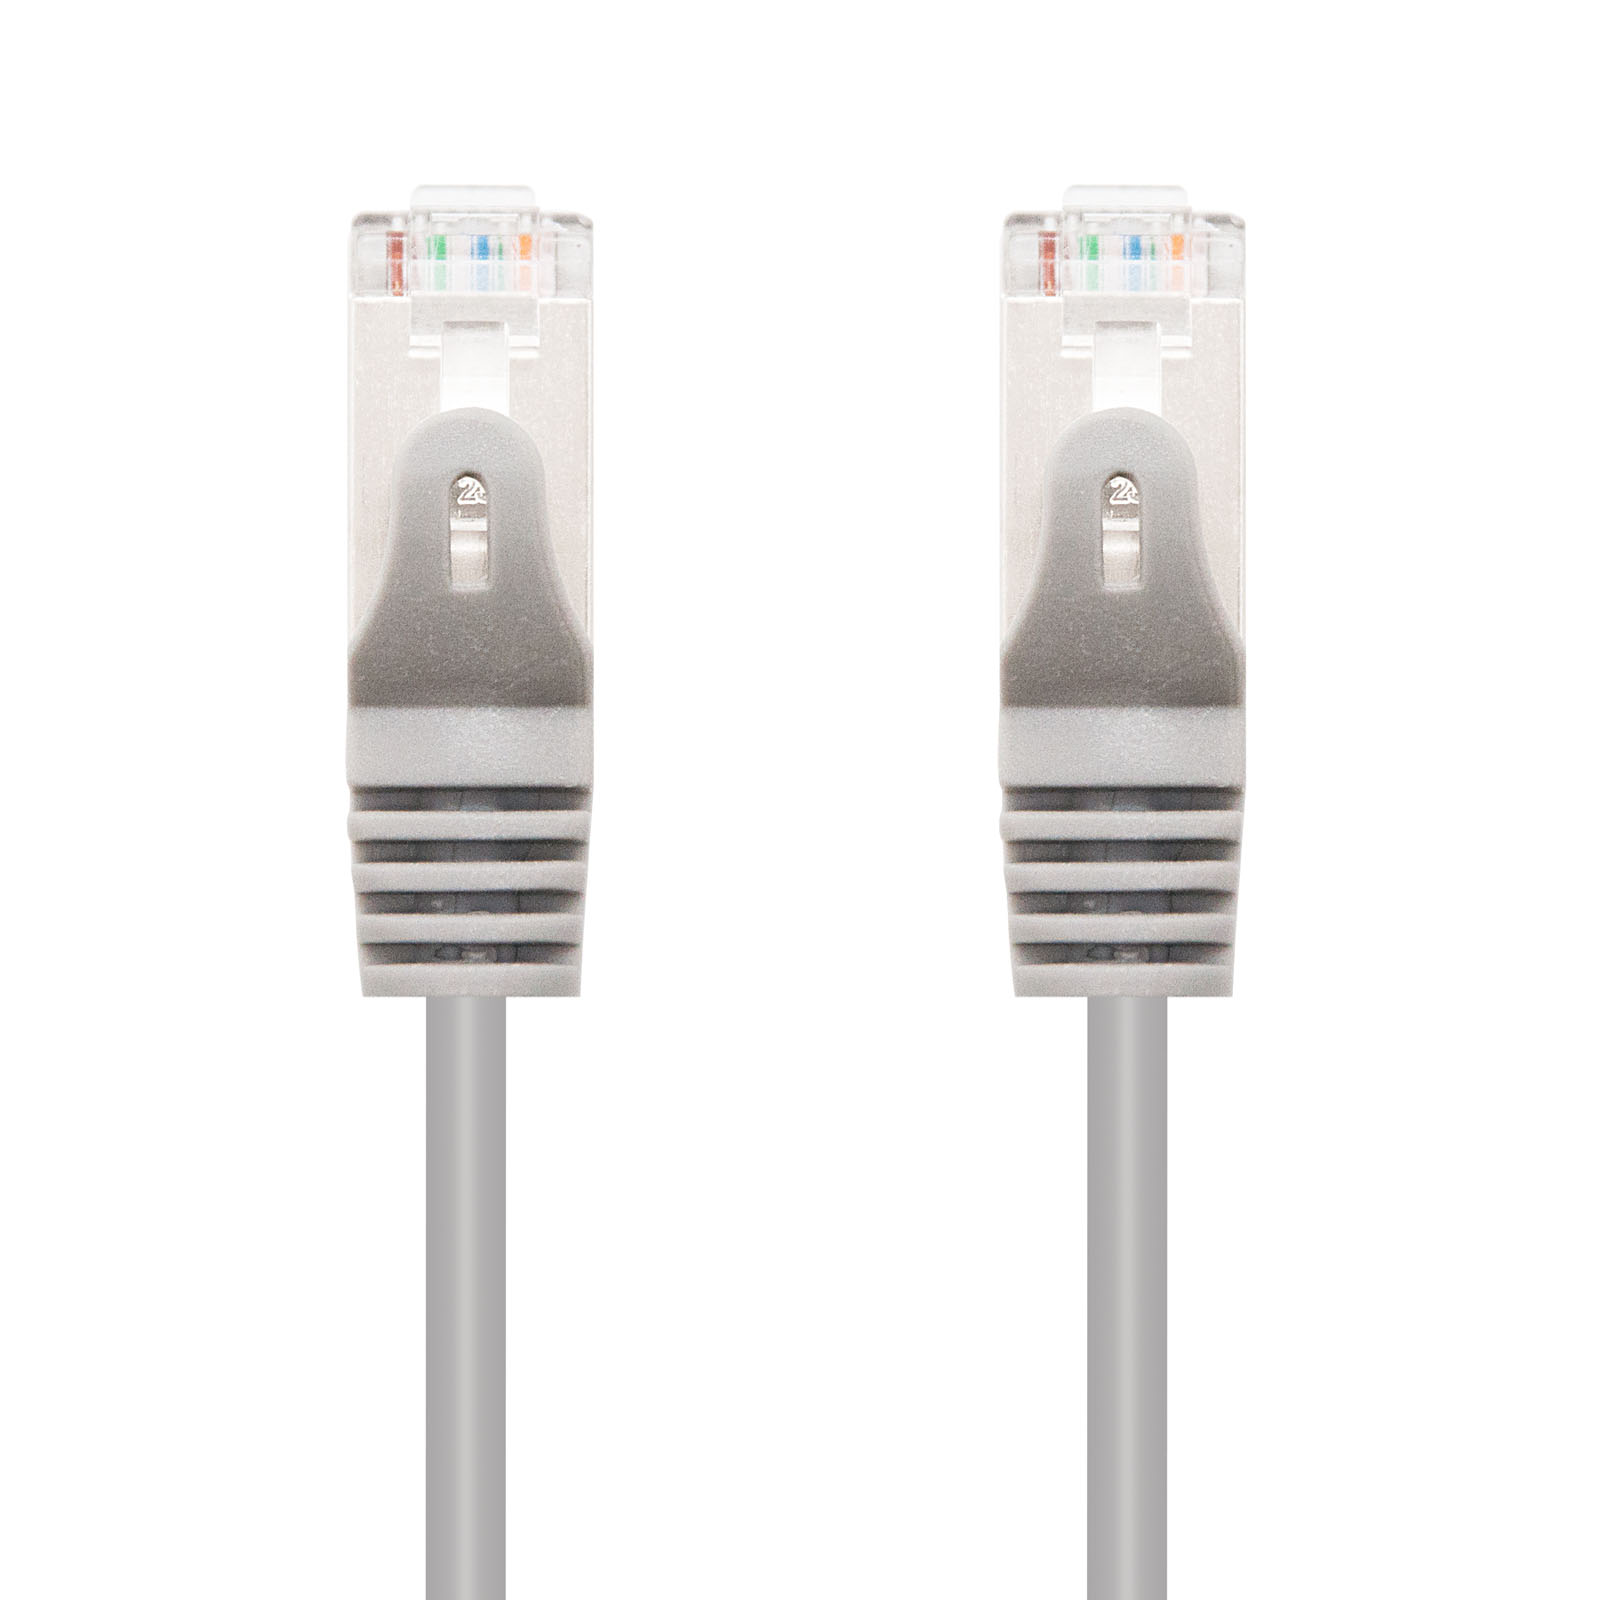 CABLE RED LATIGUILLO RJ45 CAT.6 FTP AWG24 10 M